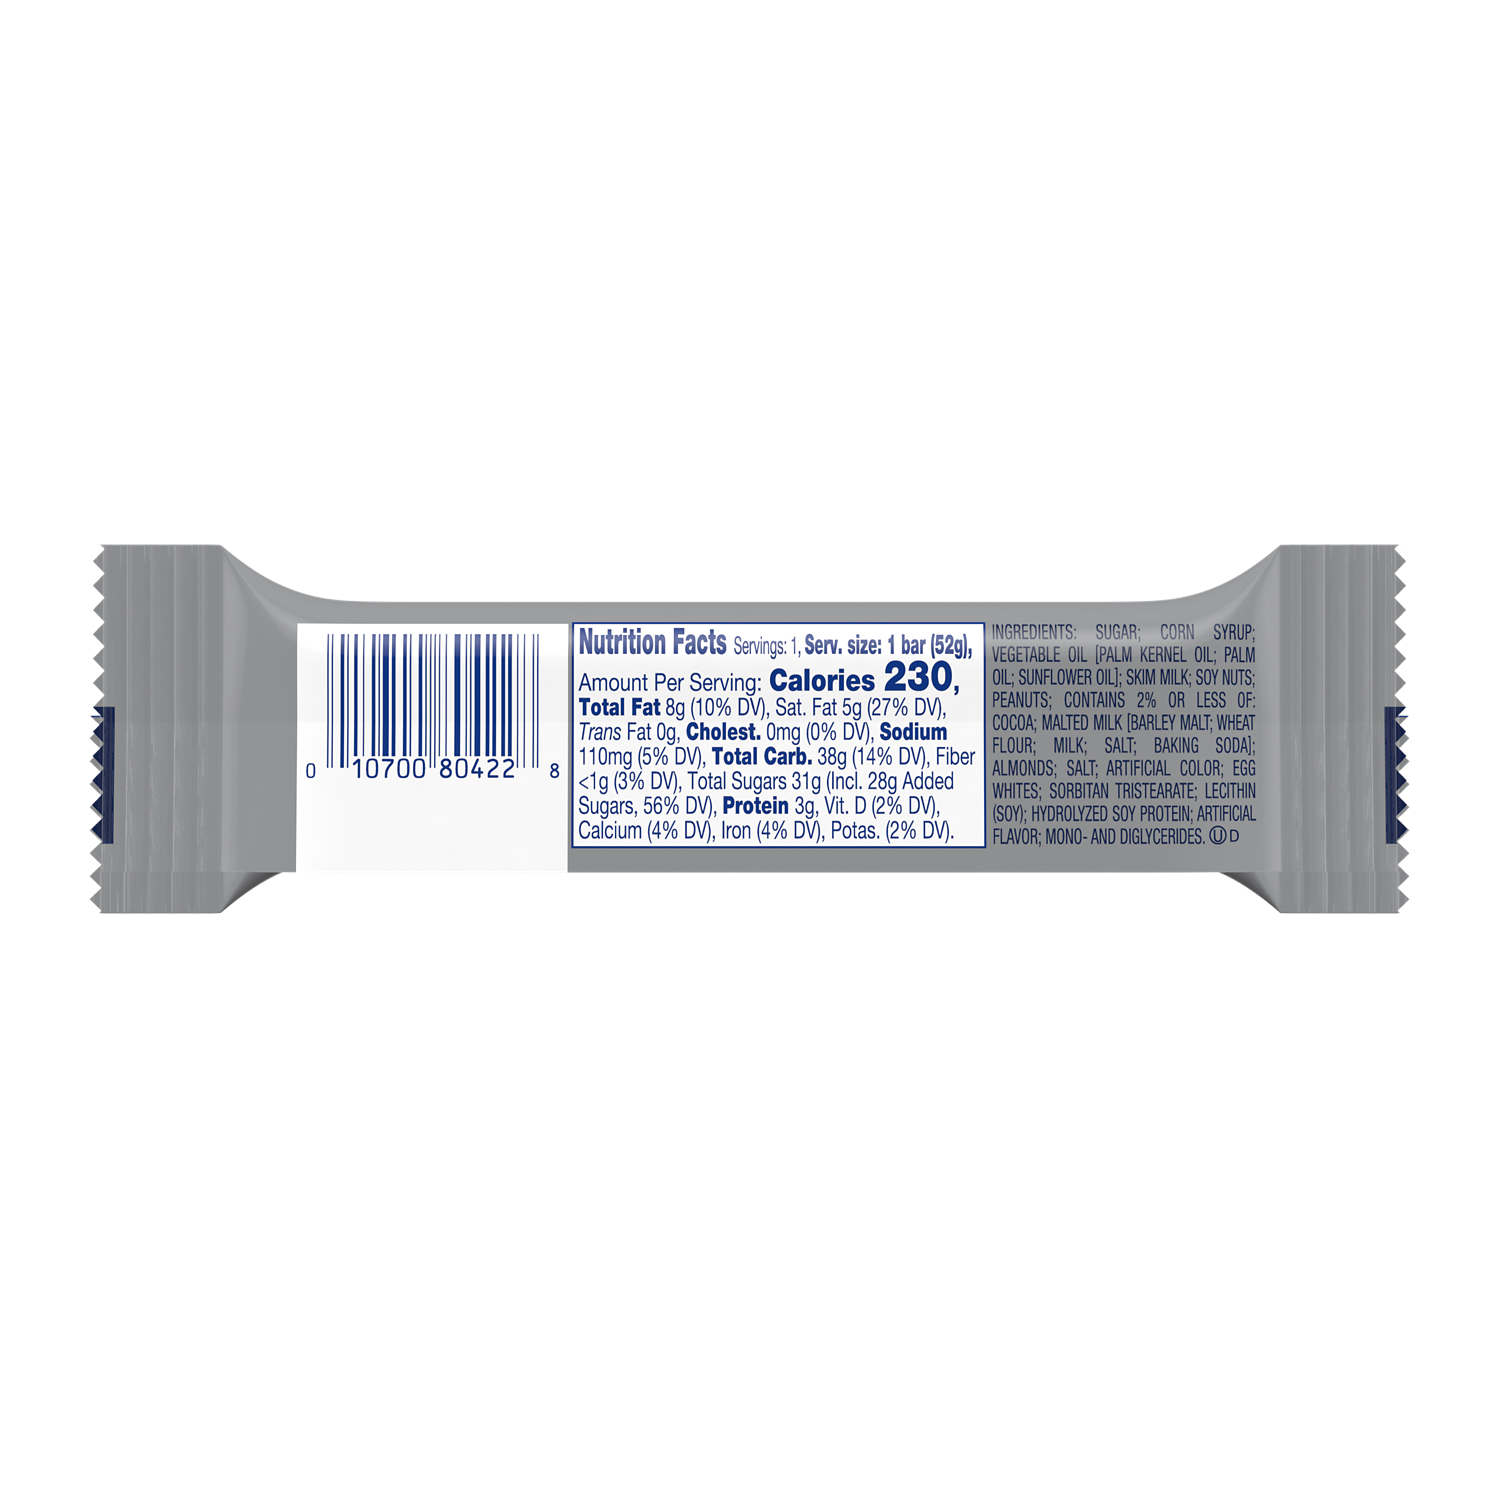 ZERO Candy Bar, 1.85 oz - Back of Package